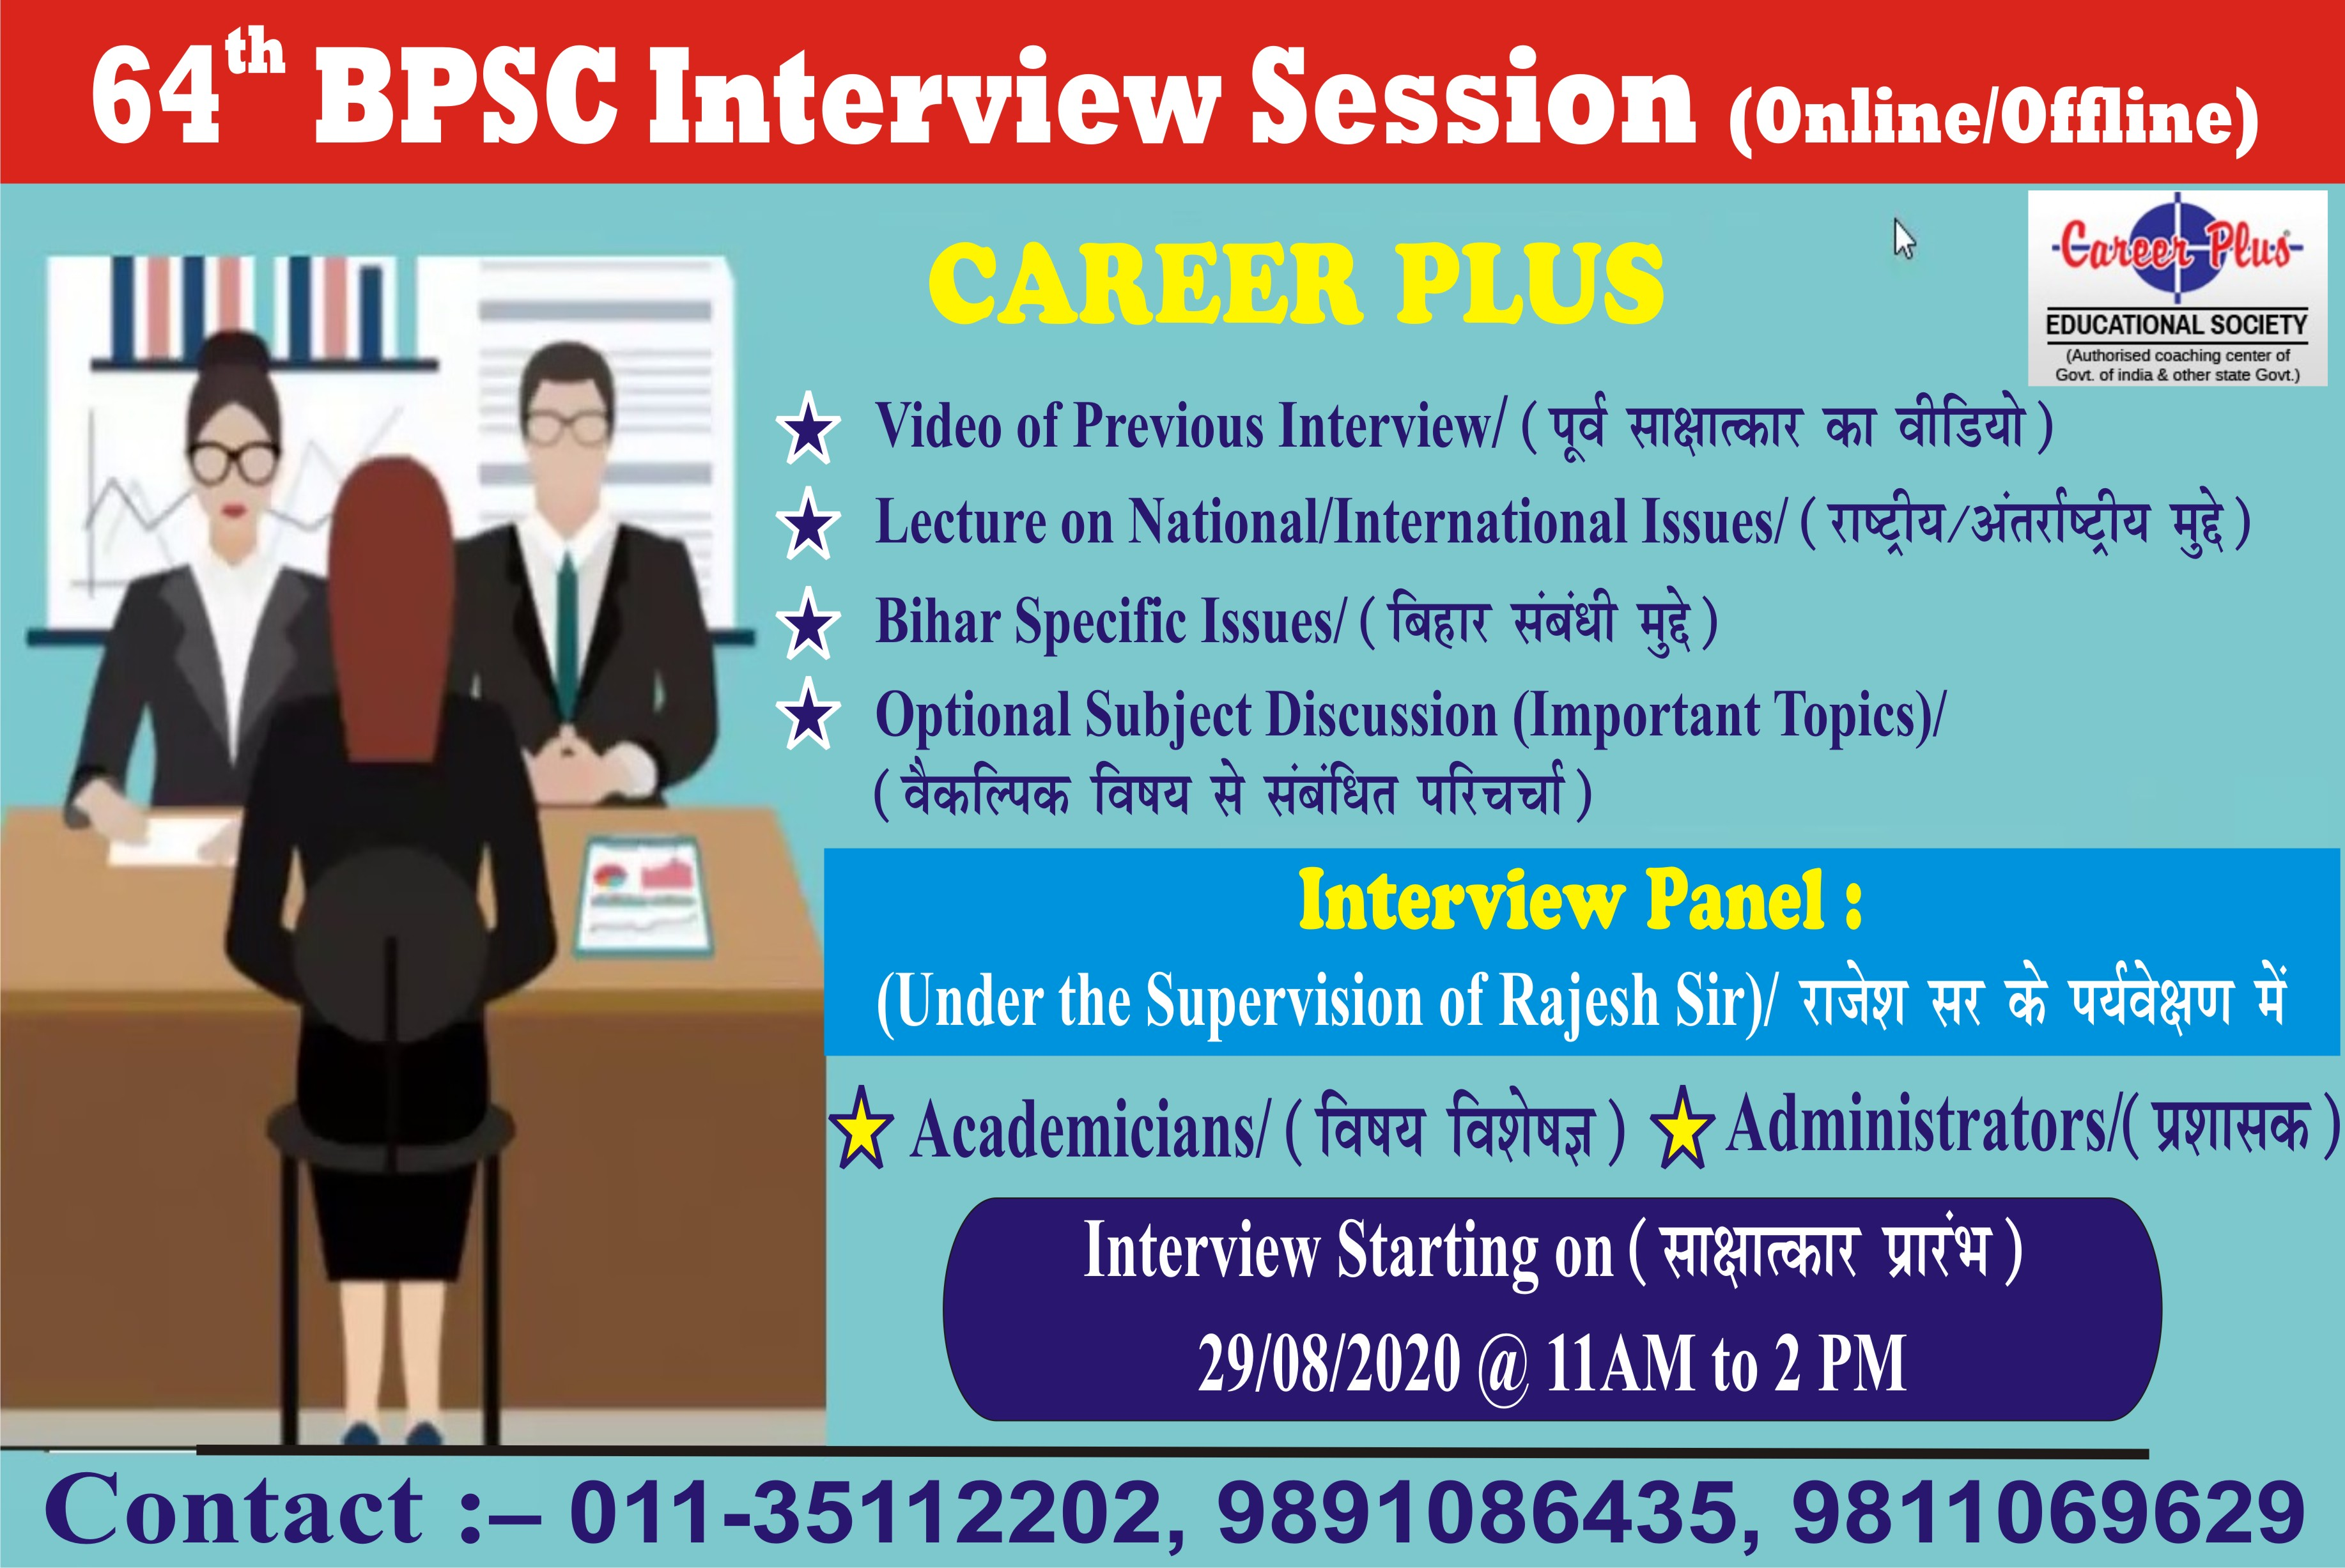 BPSC Live Interview Suchtra Patel Patna by Career Plus Online cover